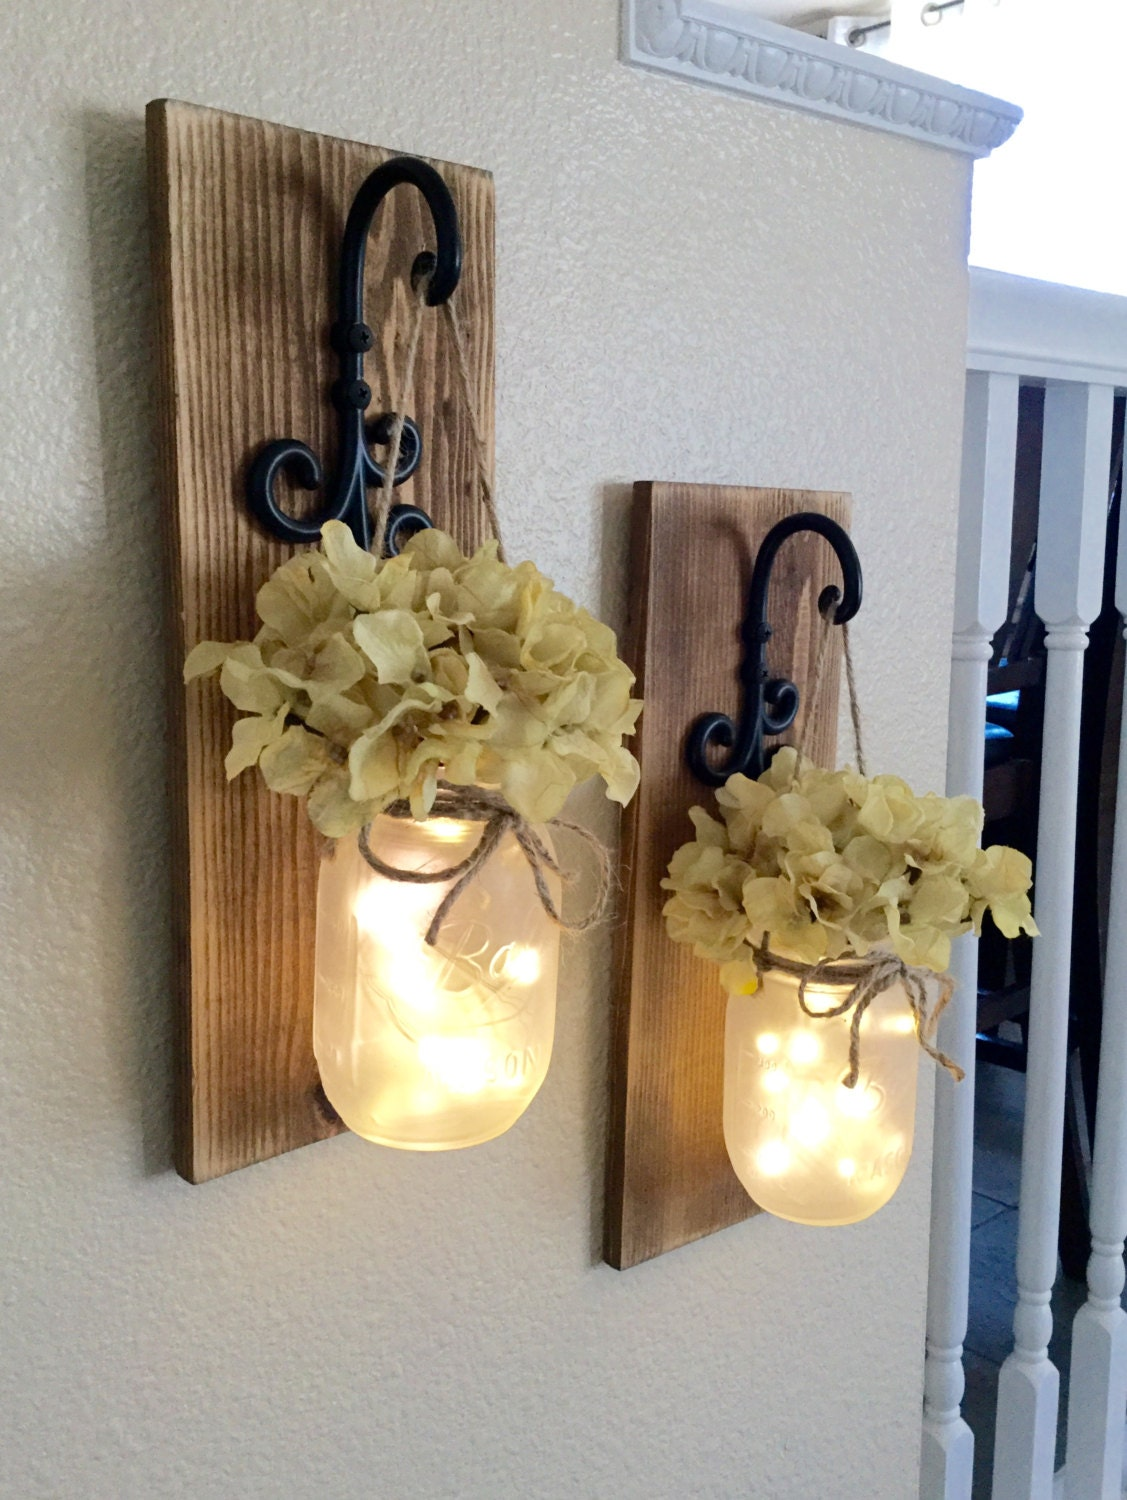 Rustic Mason Jar Sconce With LightsMason Jar DecorMason Jar